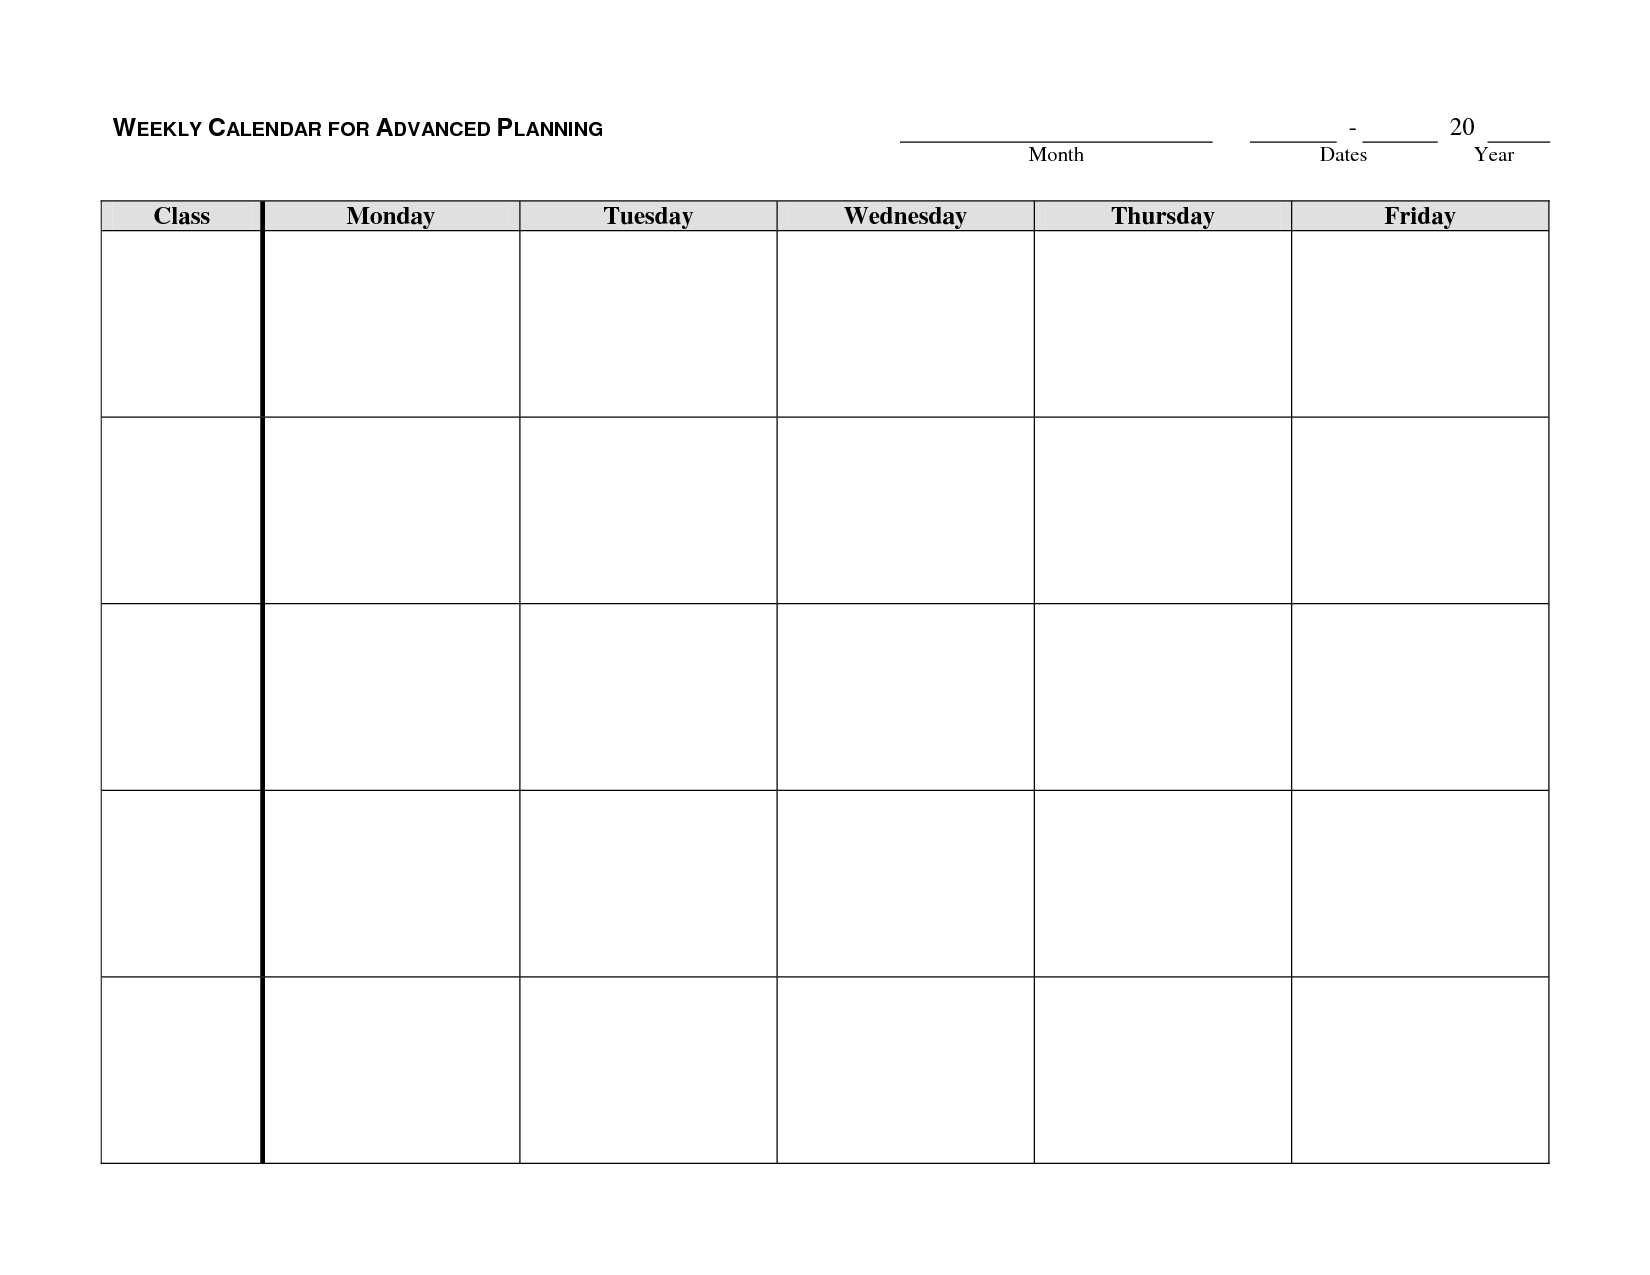 Schedule Template Images Of Week Monday Friday Bfegy Com Thru Sunday throughout Monday To Friday Timetable Template